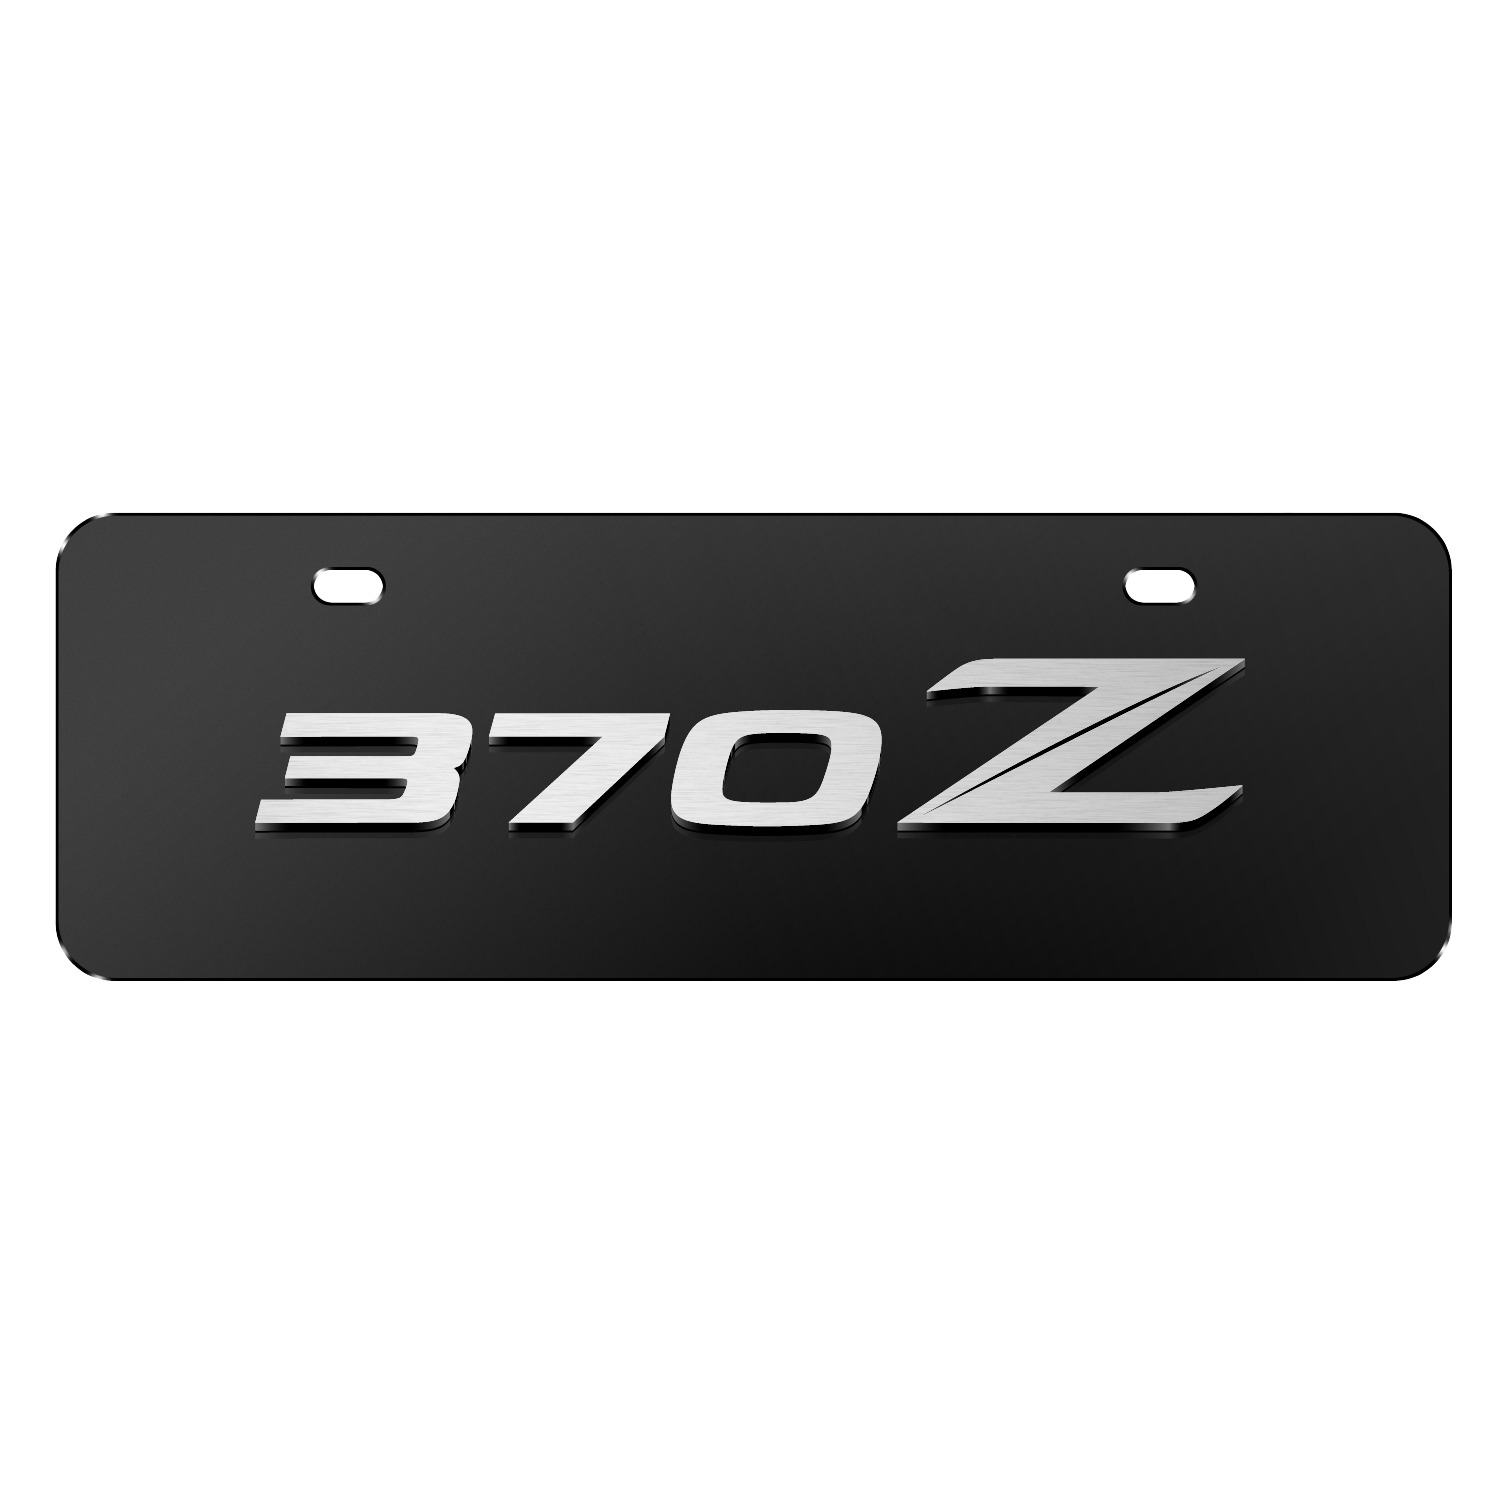 """Nissan 370Z 3D Black 12""""x4"""" Half-Size Stainless Steel License Plate"""